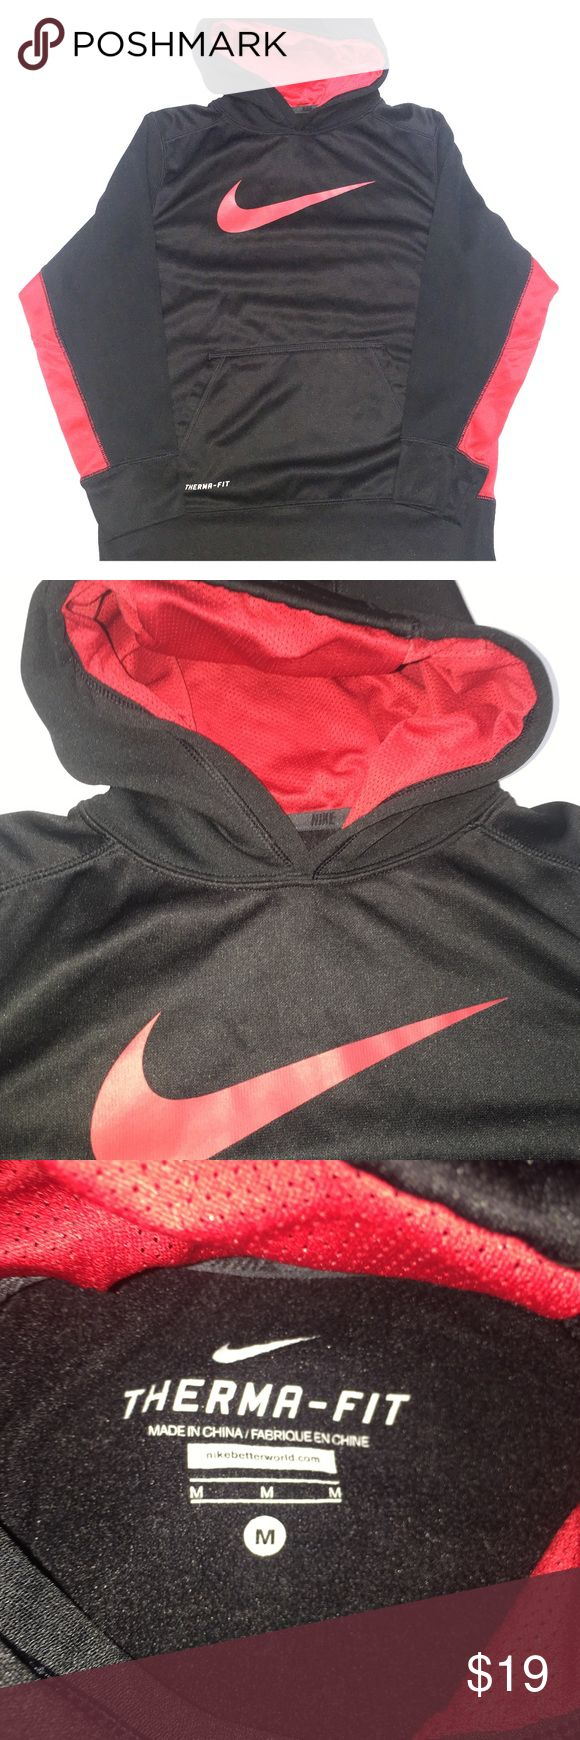 Boys Nike pullover hoodie In excellent condition! Nike Shirts & Tops Sweatshirts & Hoodies